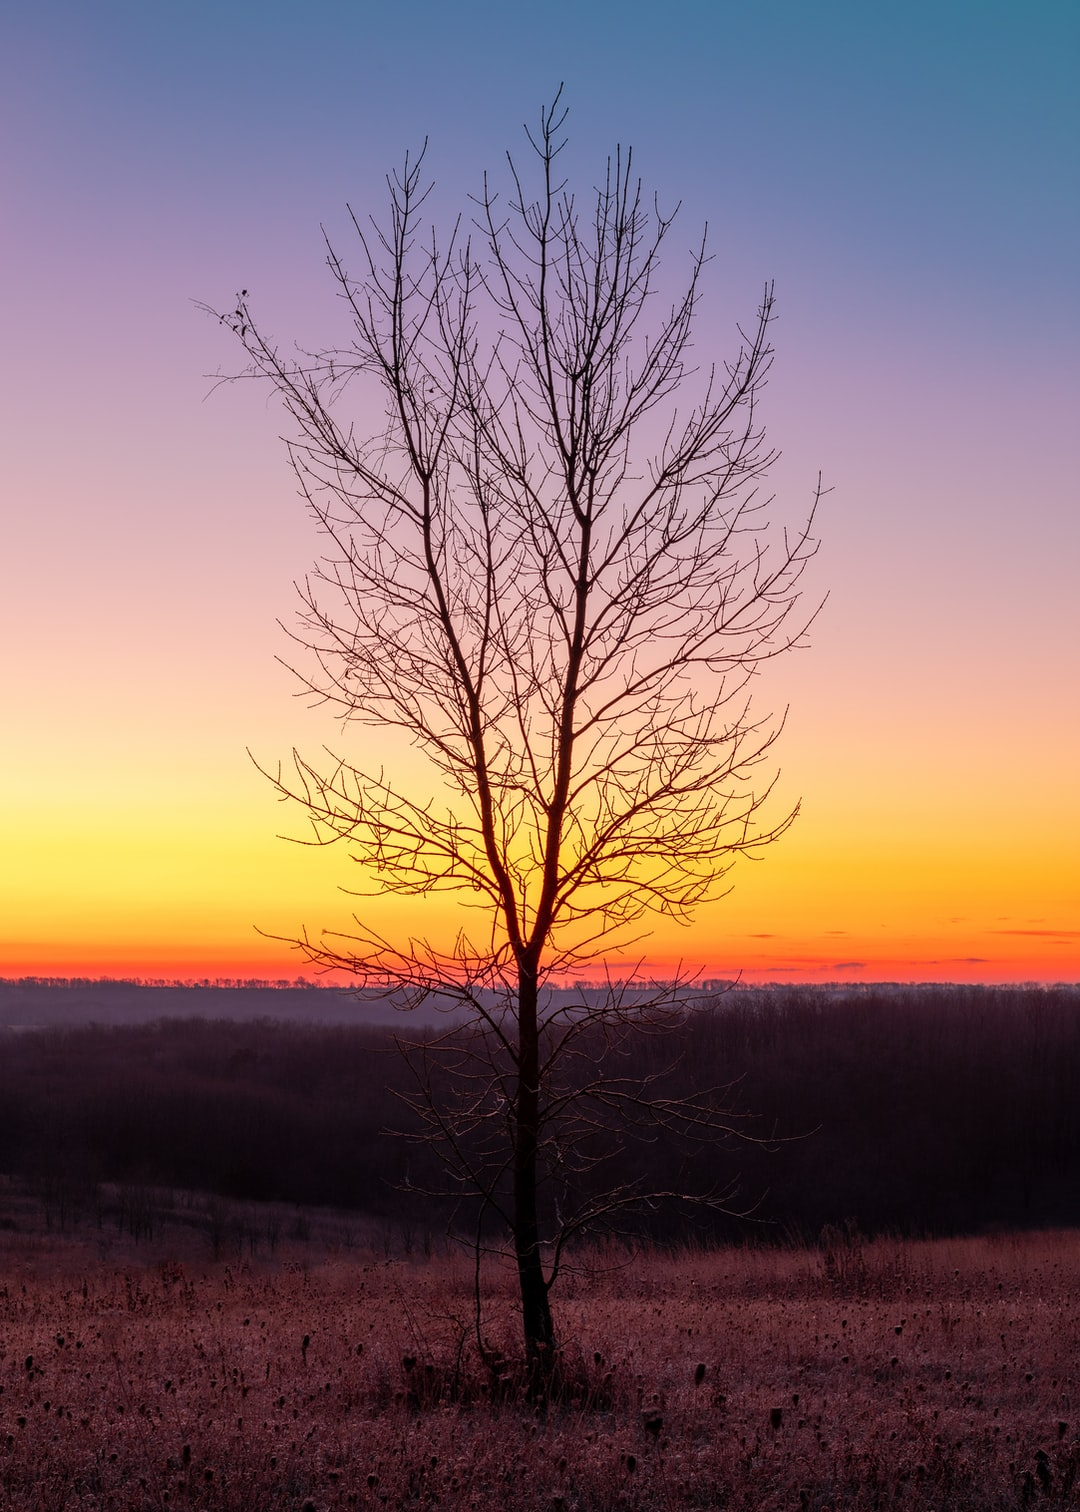 A Tree and Colors